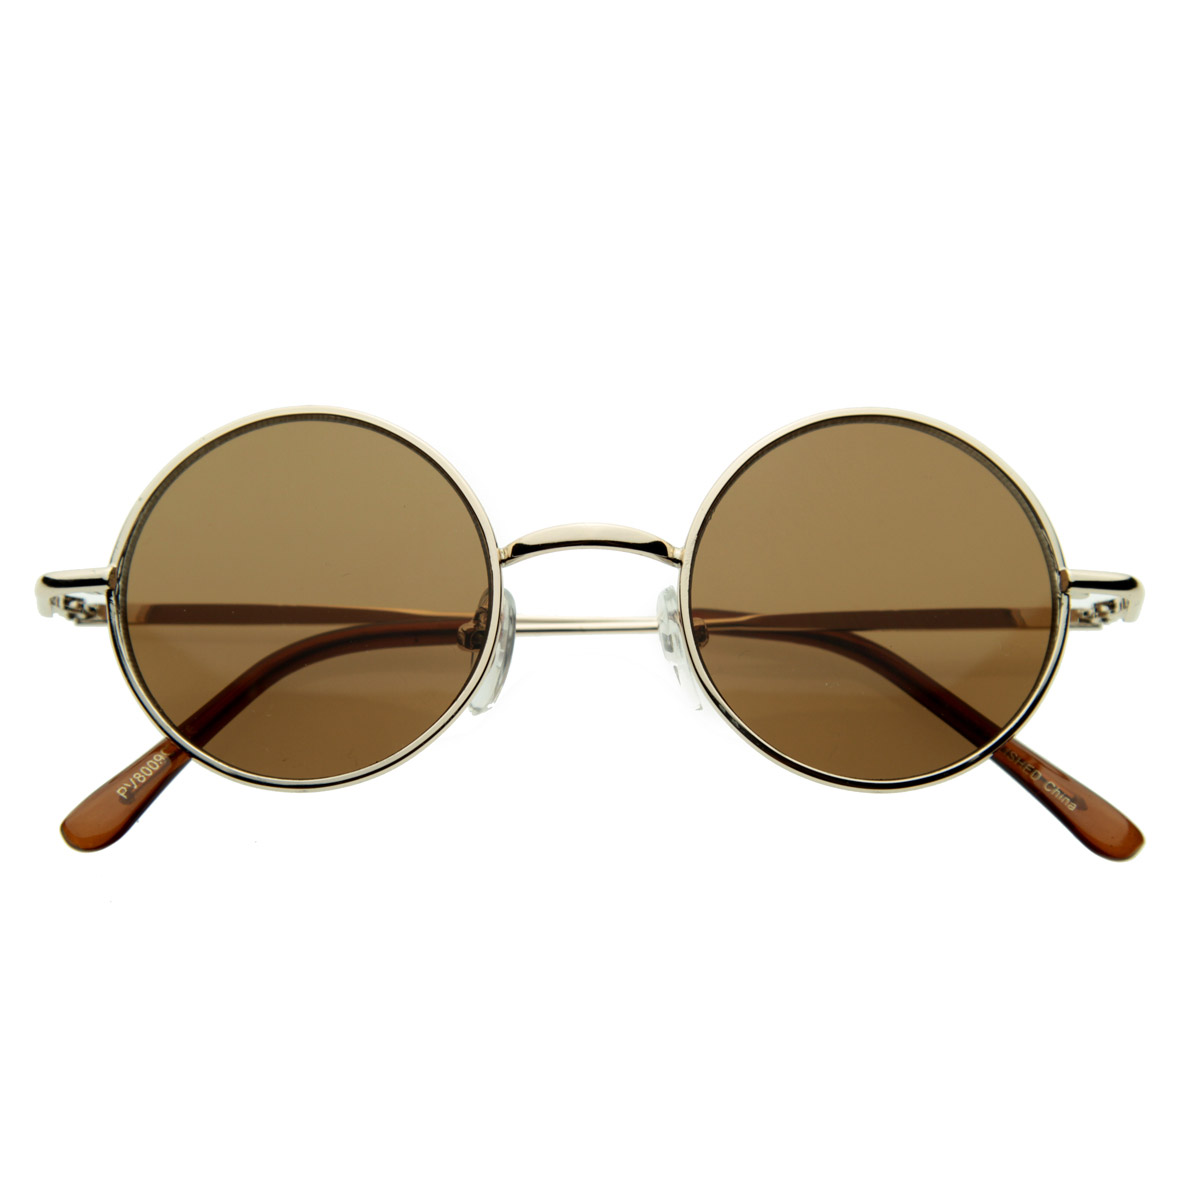 Small Retro Vintage Style Lennon Inspired Round Metal Circle Sunglasses Ebay